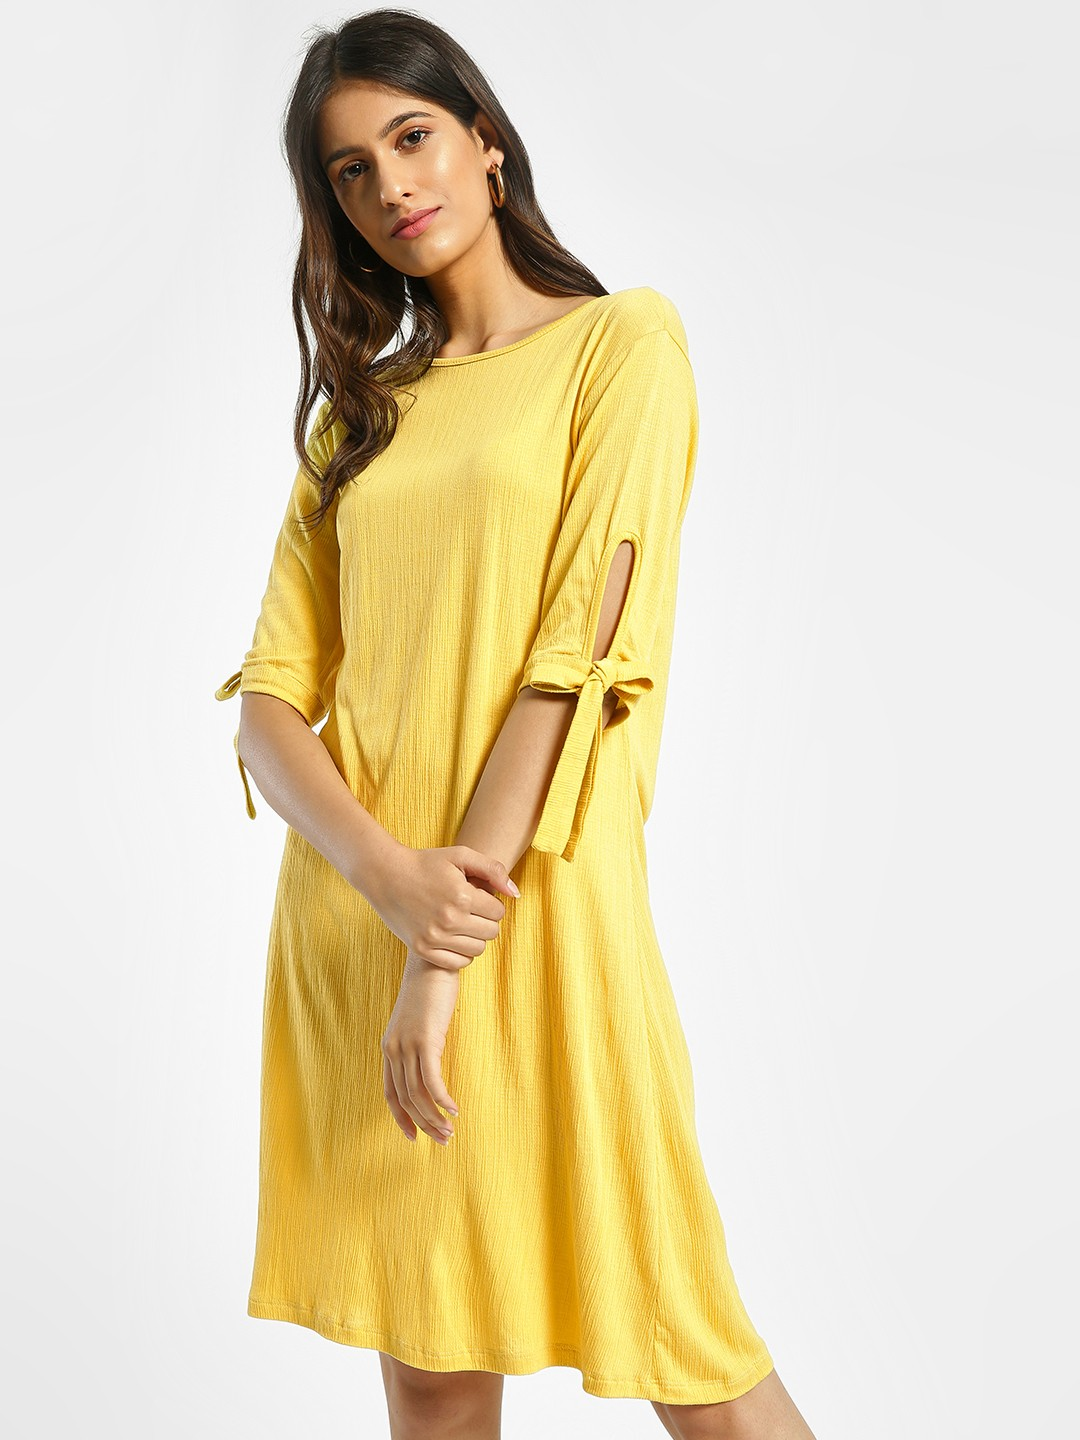 Femella Yellow Tie-Up Sleeve Shift Dress 1